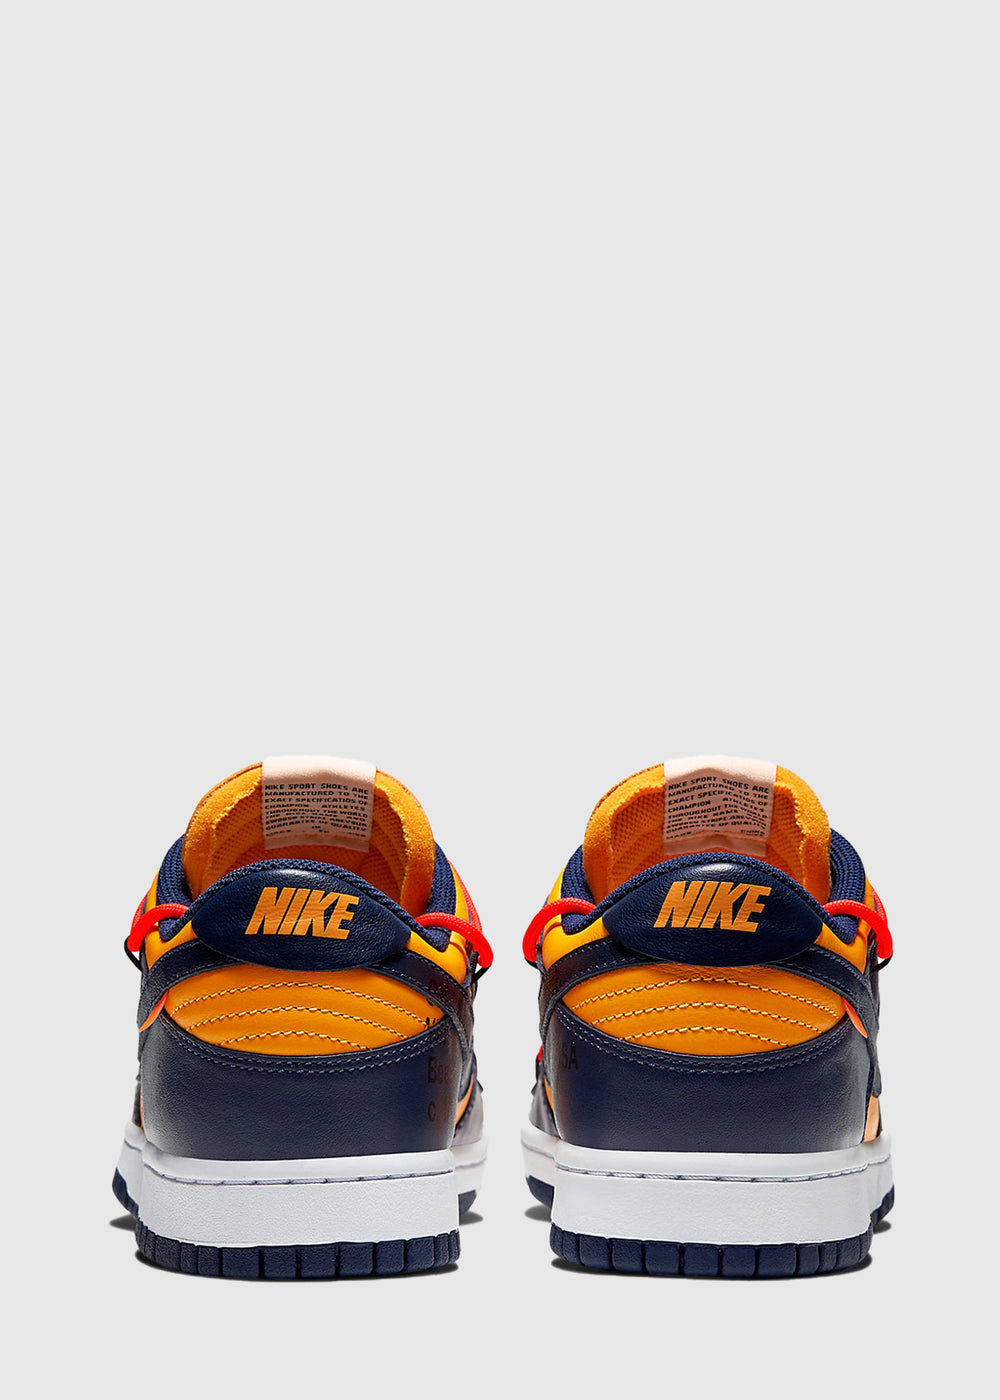 nike-x-off-white-dunk-low-navy-3